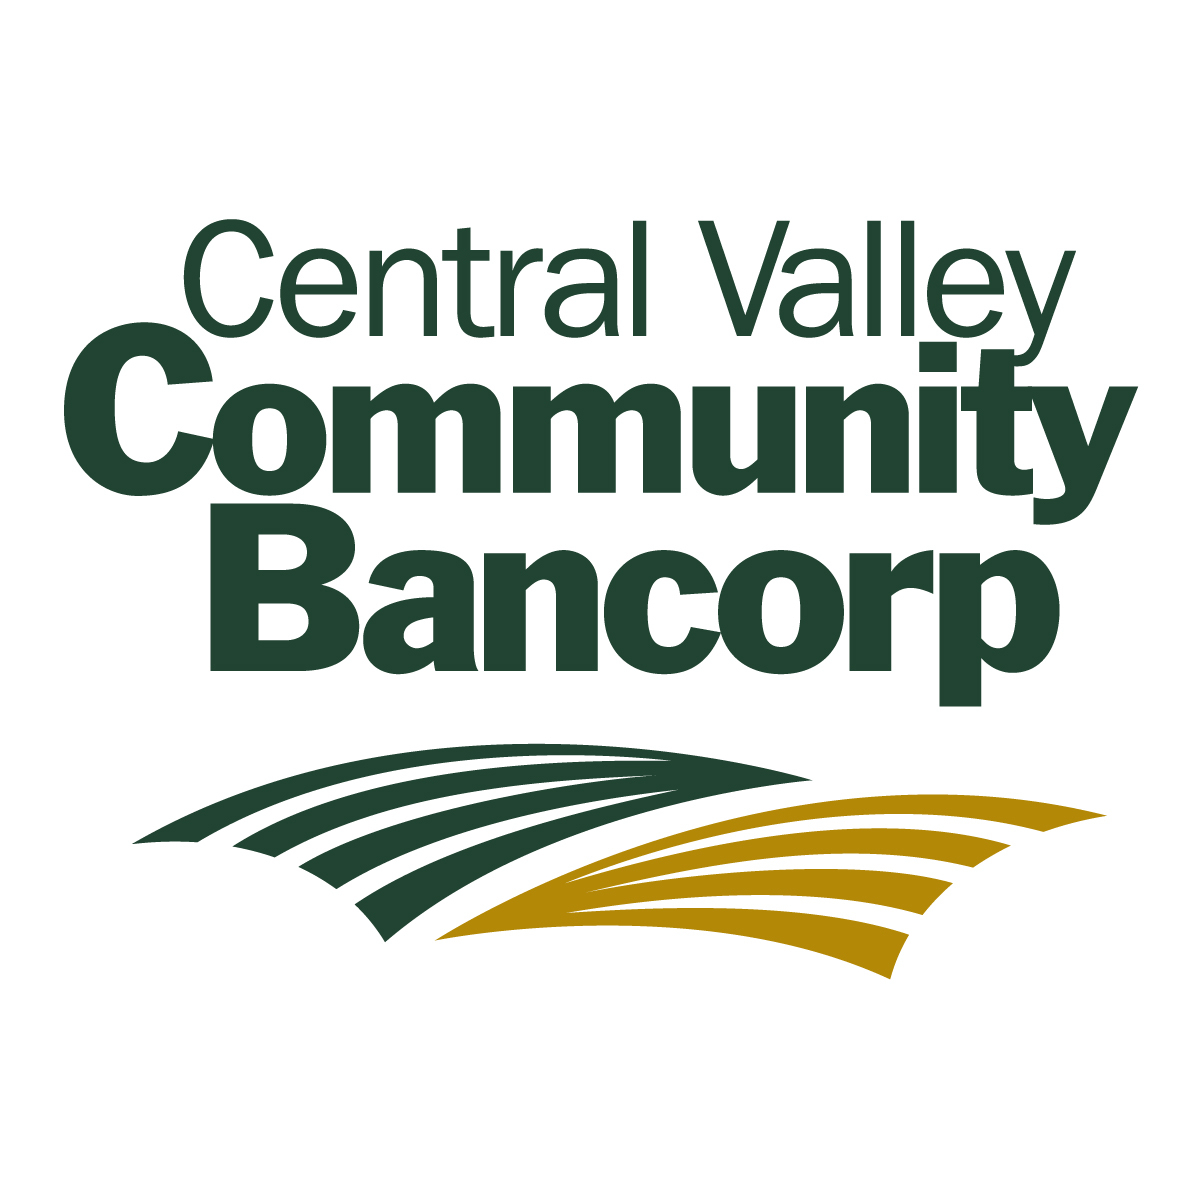 Central Valley Community Bancorp Expands Board of Directors